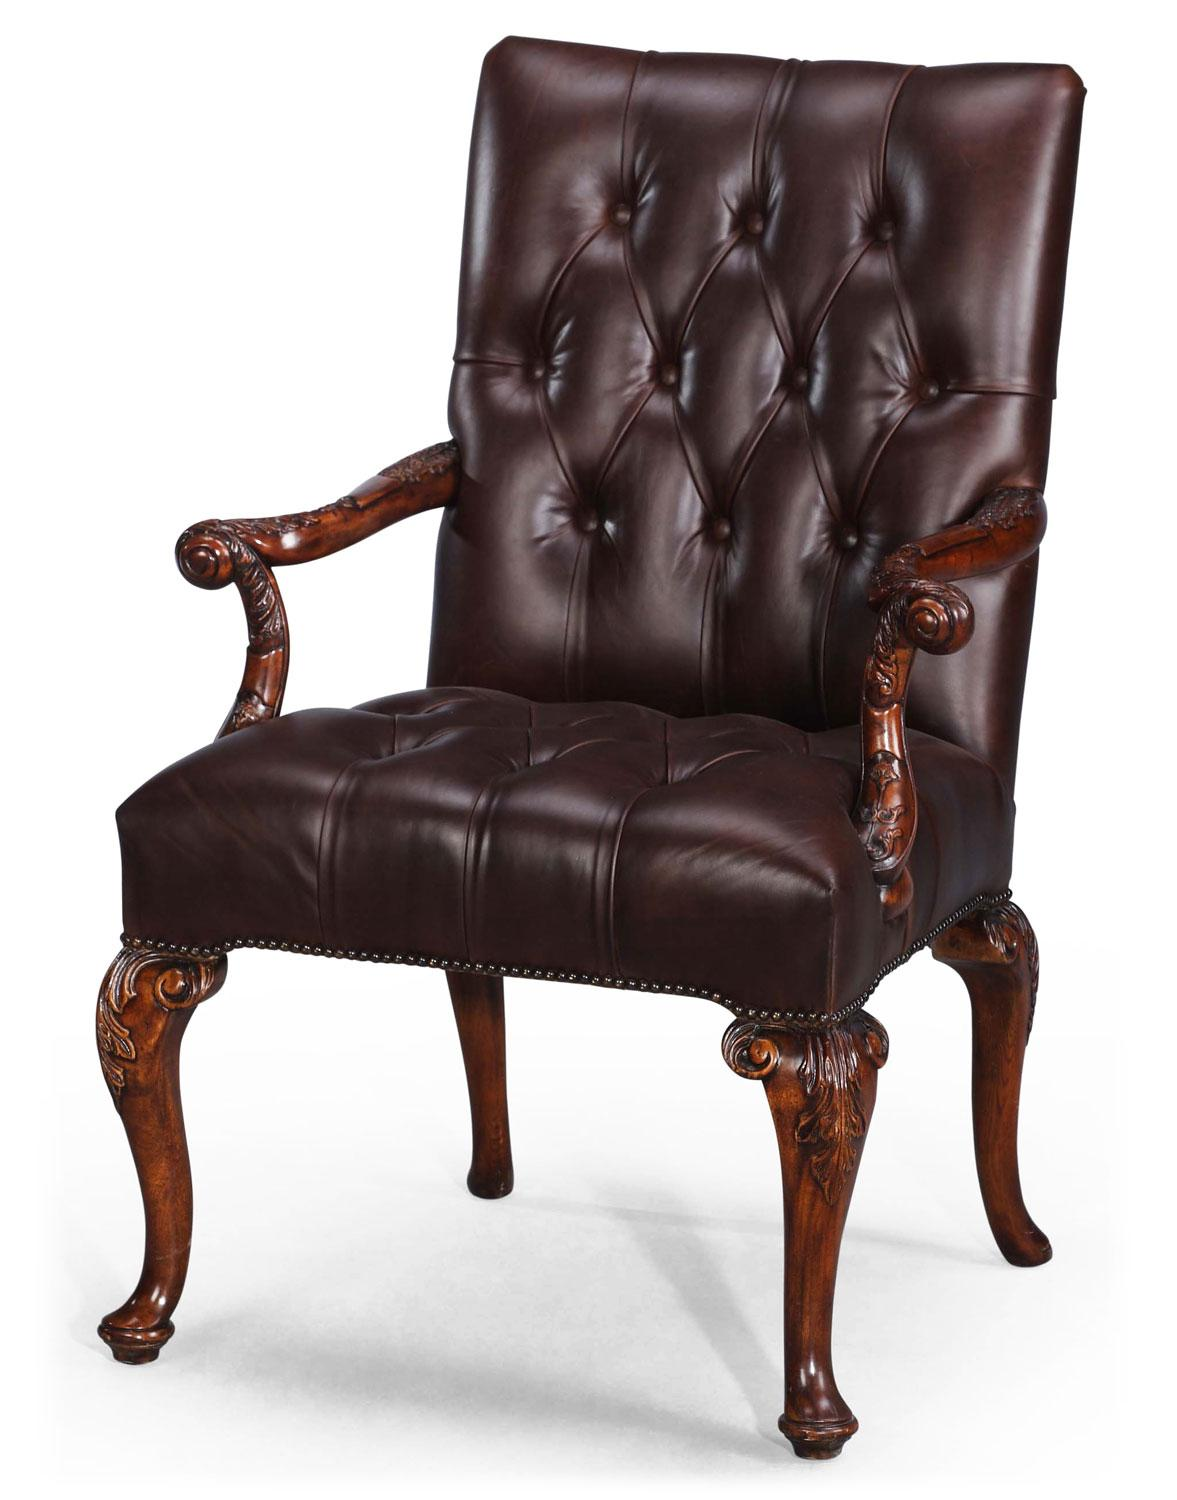 brown leather library chair desk chairs from brights of nettlebed. Black Bedroom Furniture Sets. Home Design Ideas